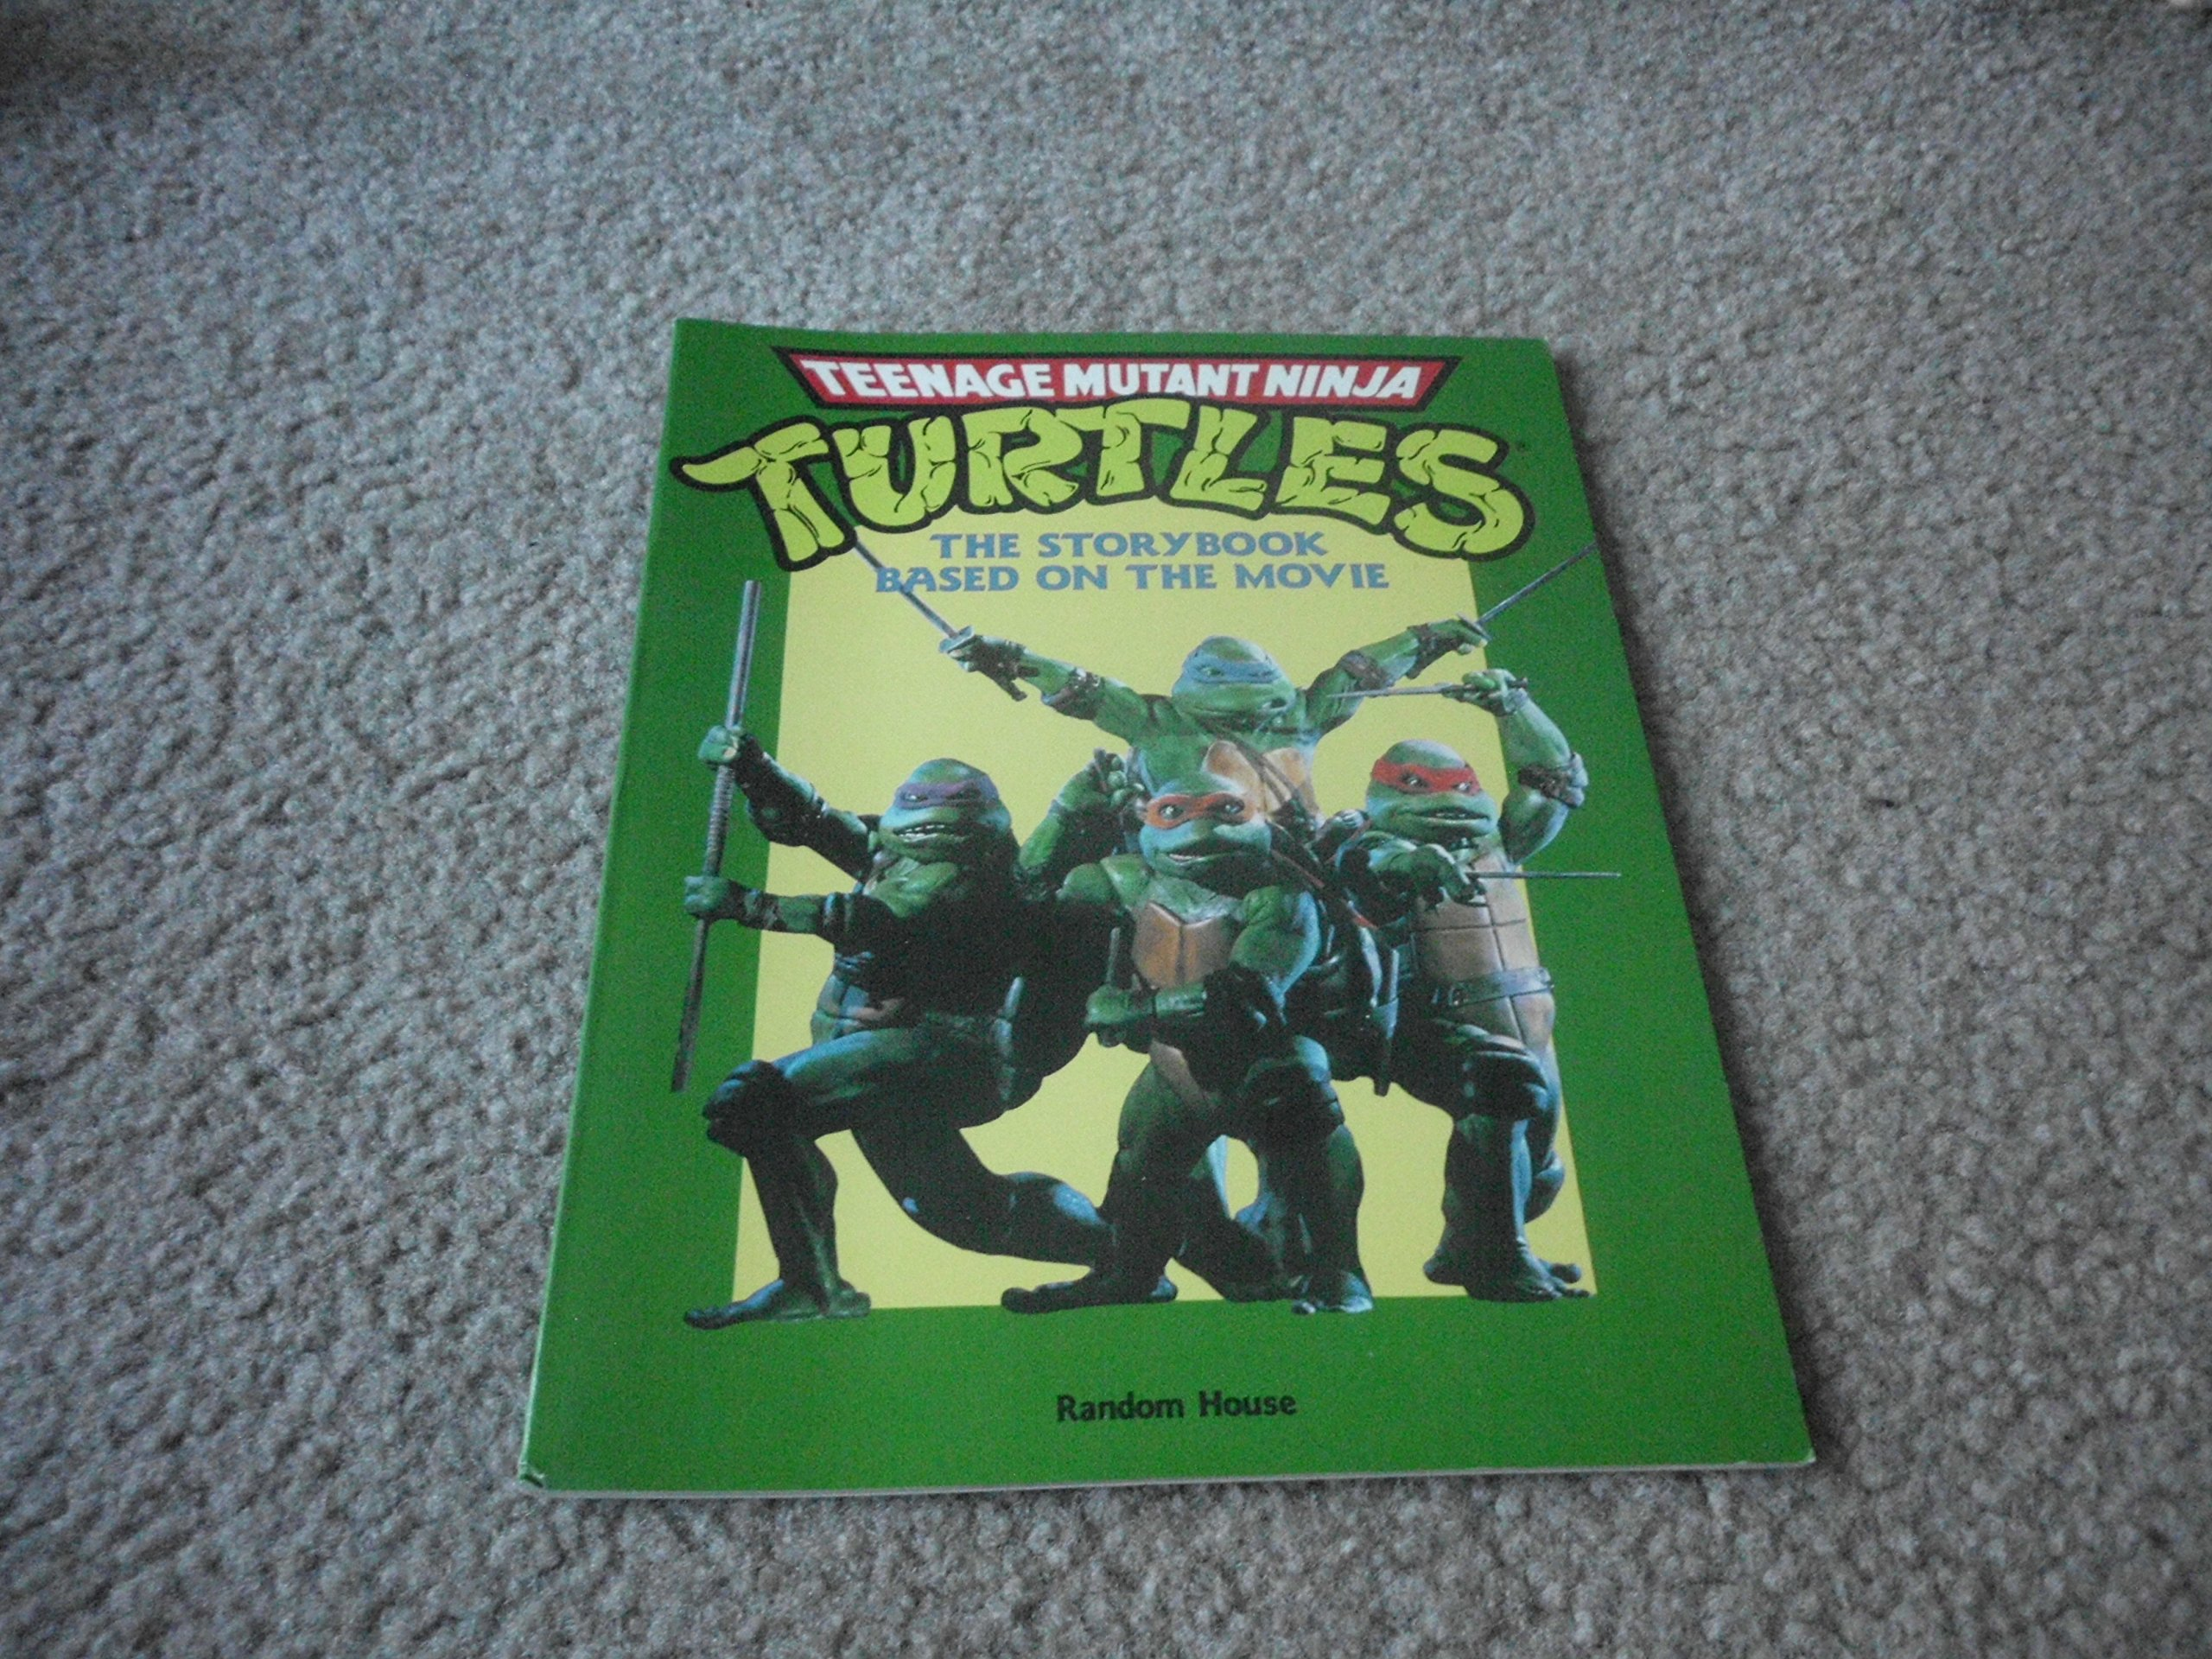 teenage mutant ninja turtles storybook based on the movie ...